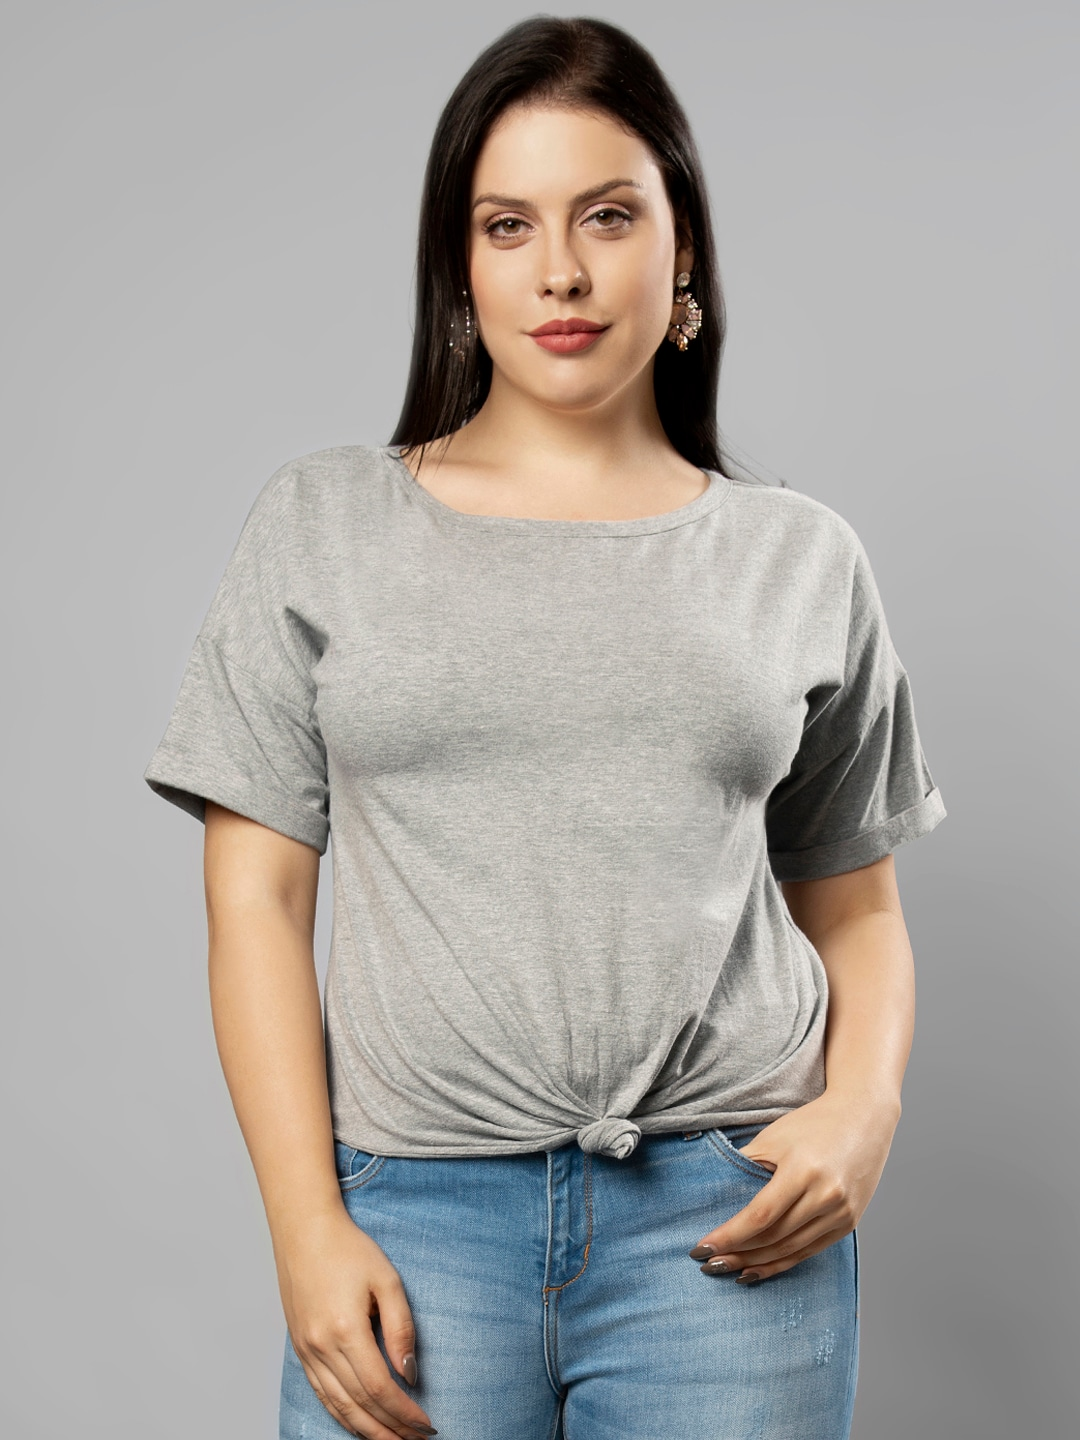 ba891f62fb269 Faballey - Exclusive Faballey Online Store in India at Myntra